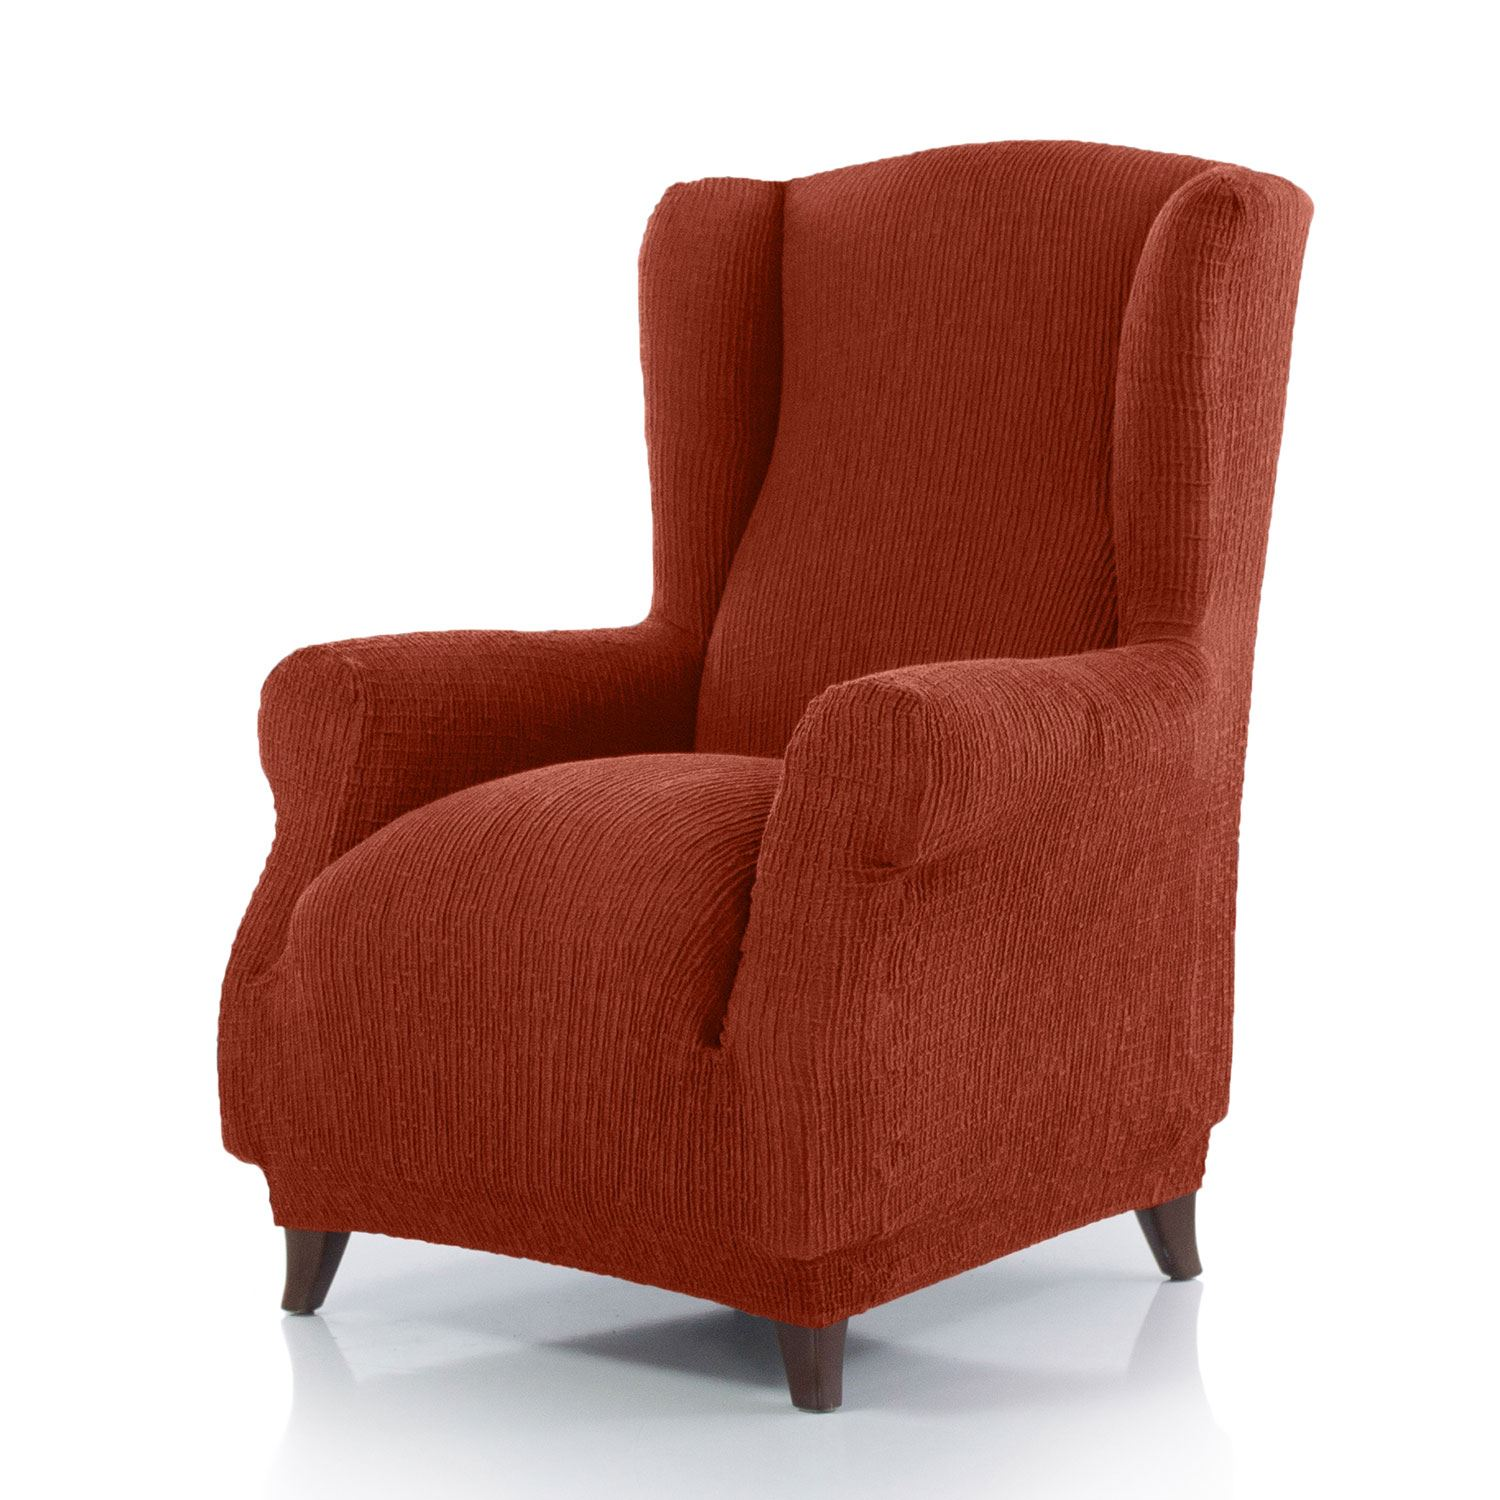 Winged Seat Stretch Armchair Cover Washable Elasticated ...